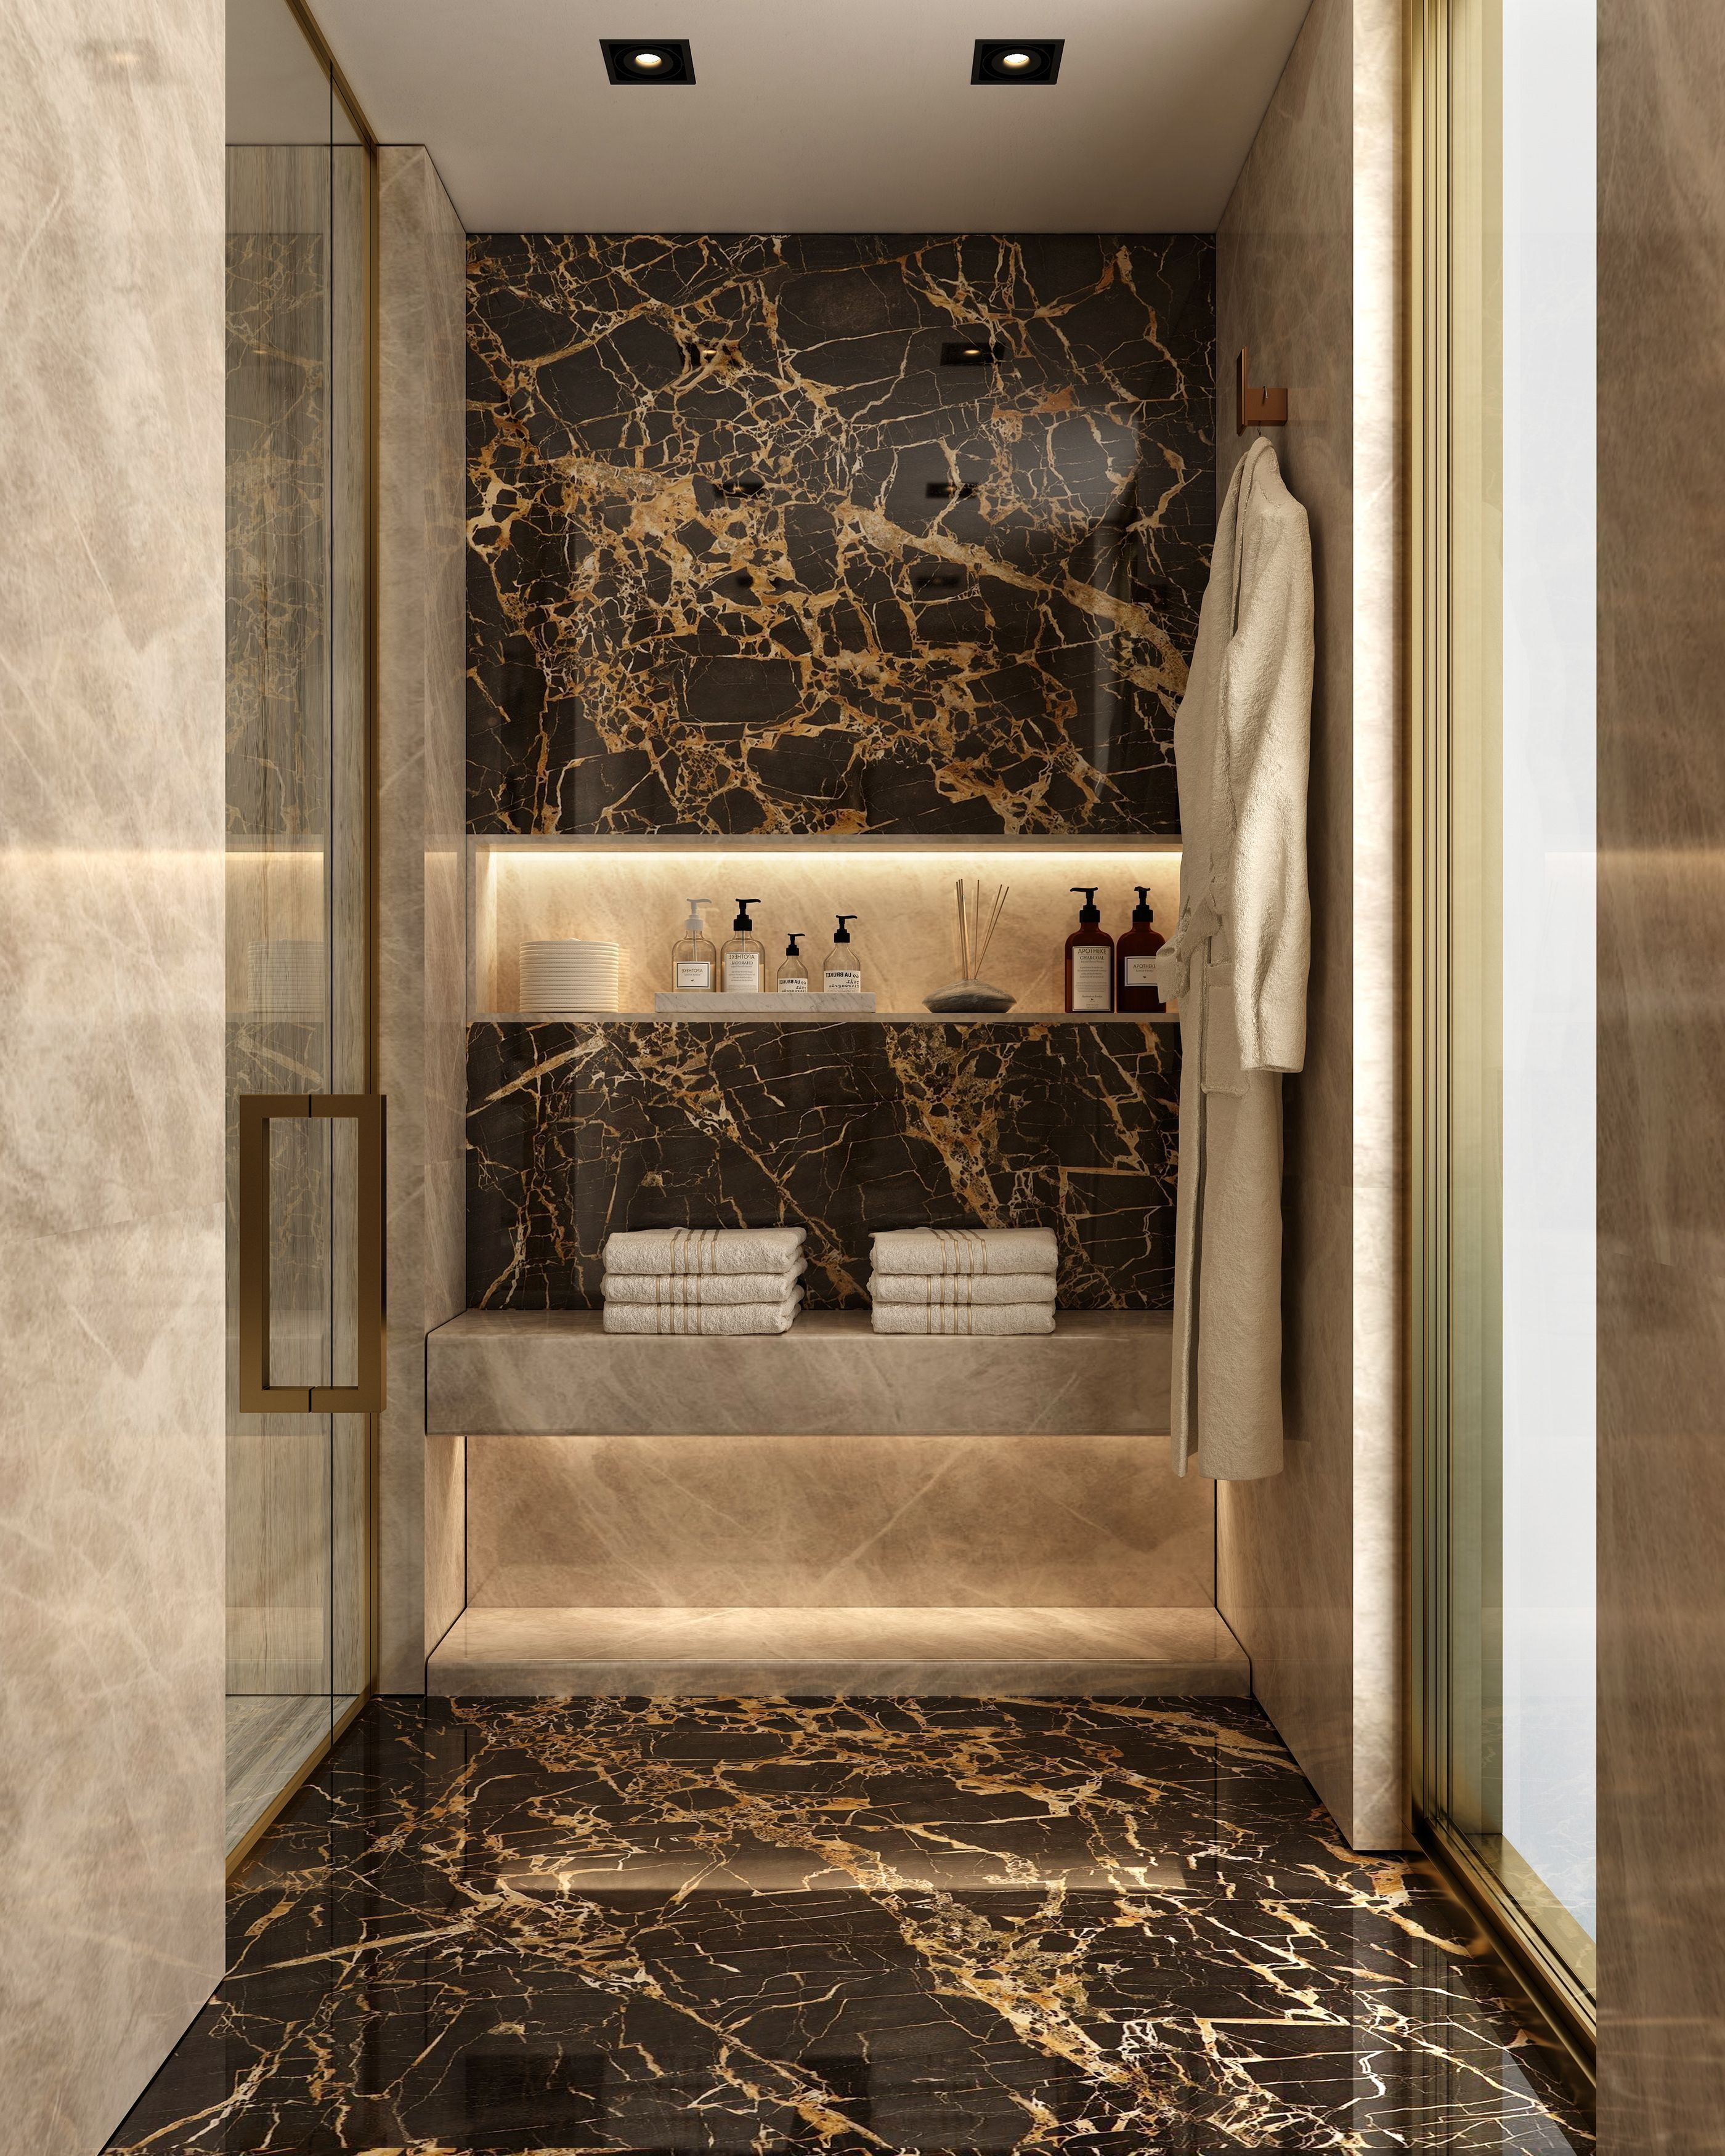 Make Your Bathroom Your Personal Spa Or Find Inspiring Luxury Bathroom Ideas Here Be Inspire Bathroom Inspiration Modern Glamorous Bathroom Luxury Bathroom